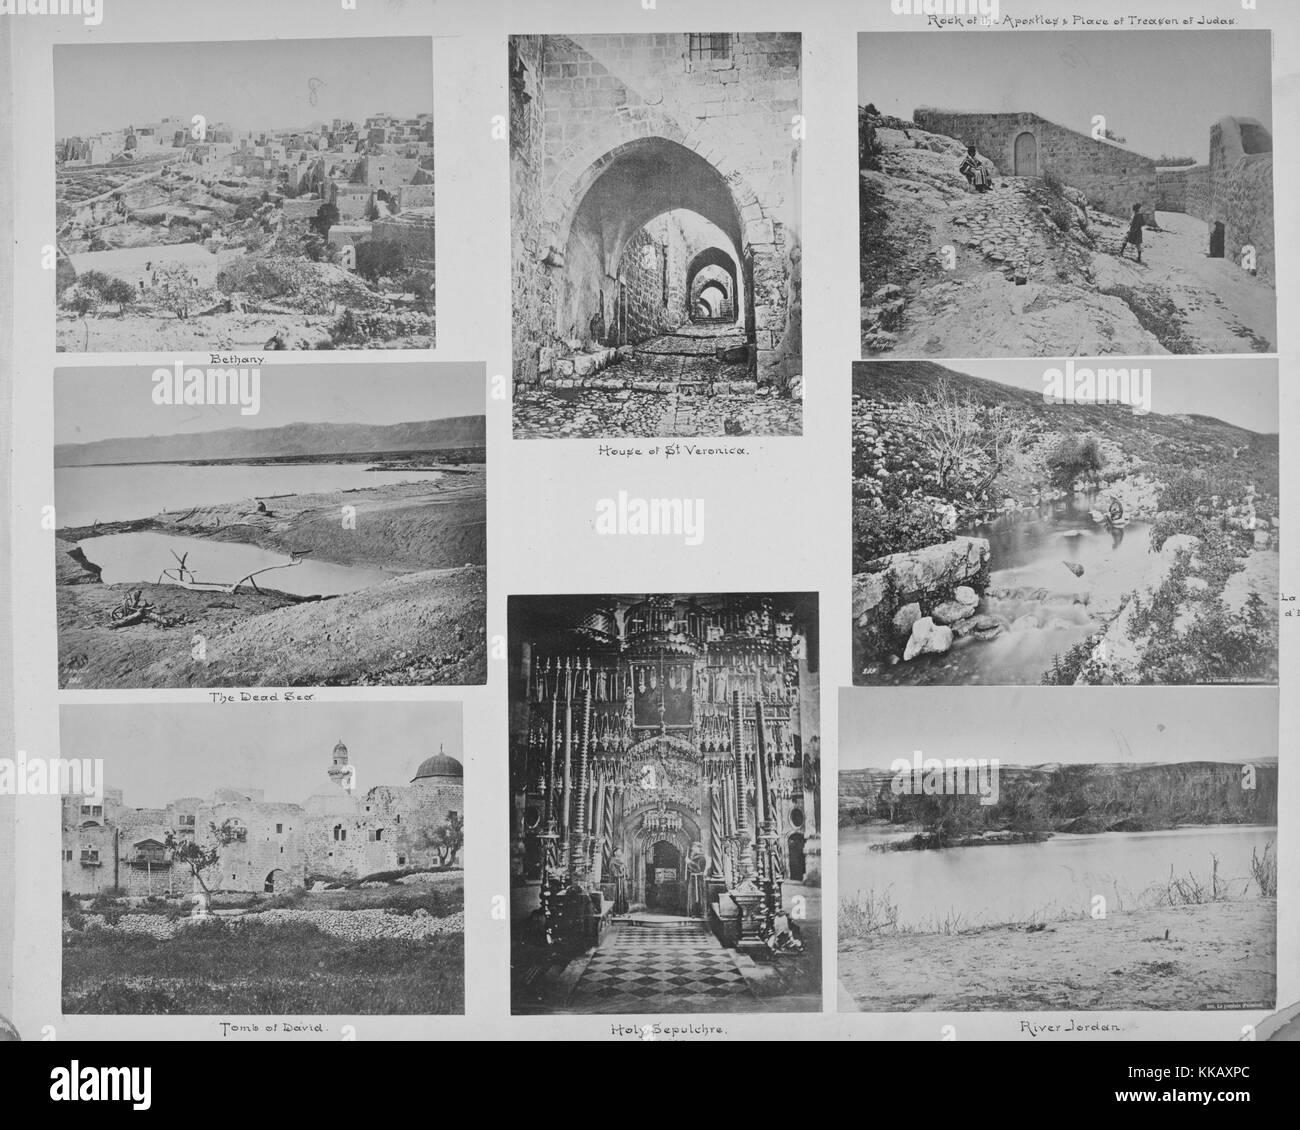 A collection of photographs that are mostly from Israel, starting from the top left and moving clockwise they are - Stock Image